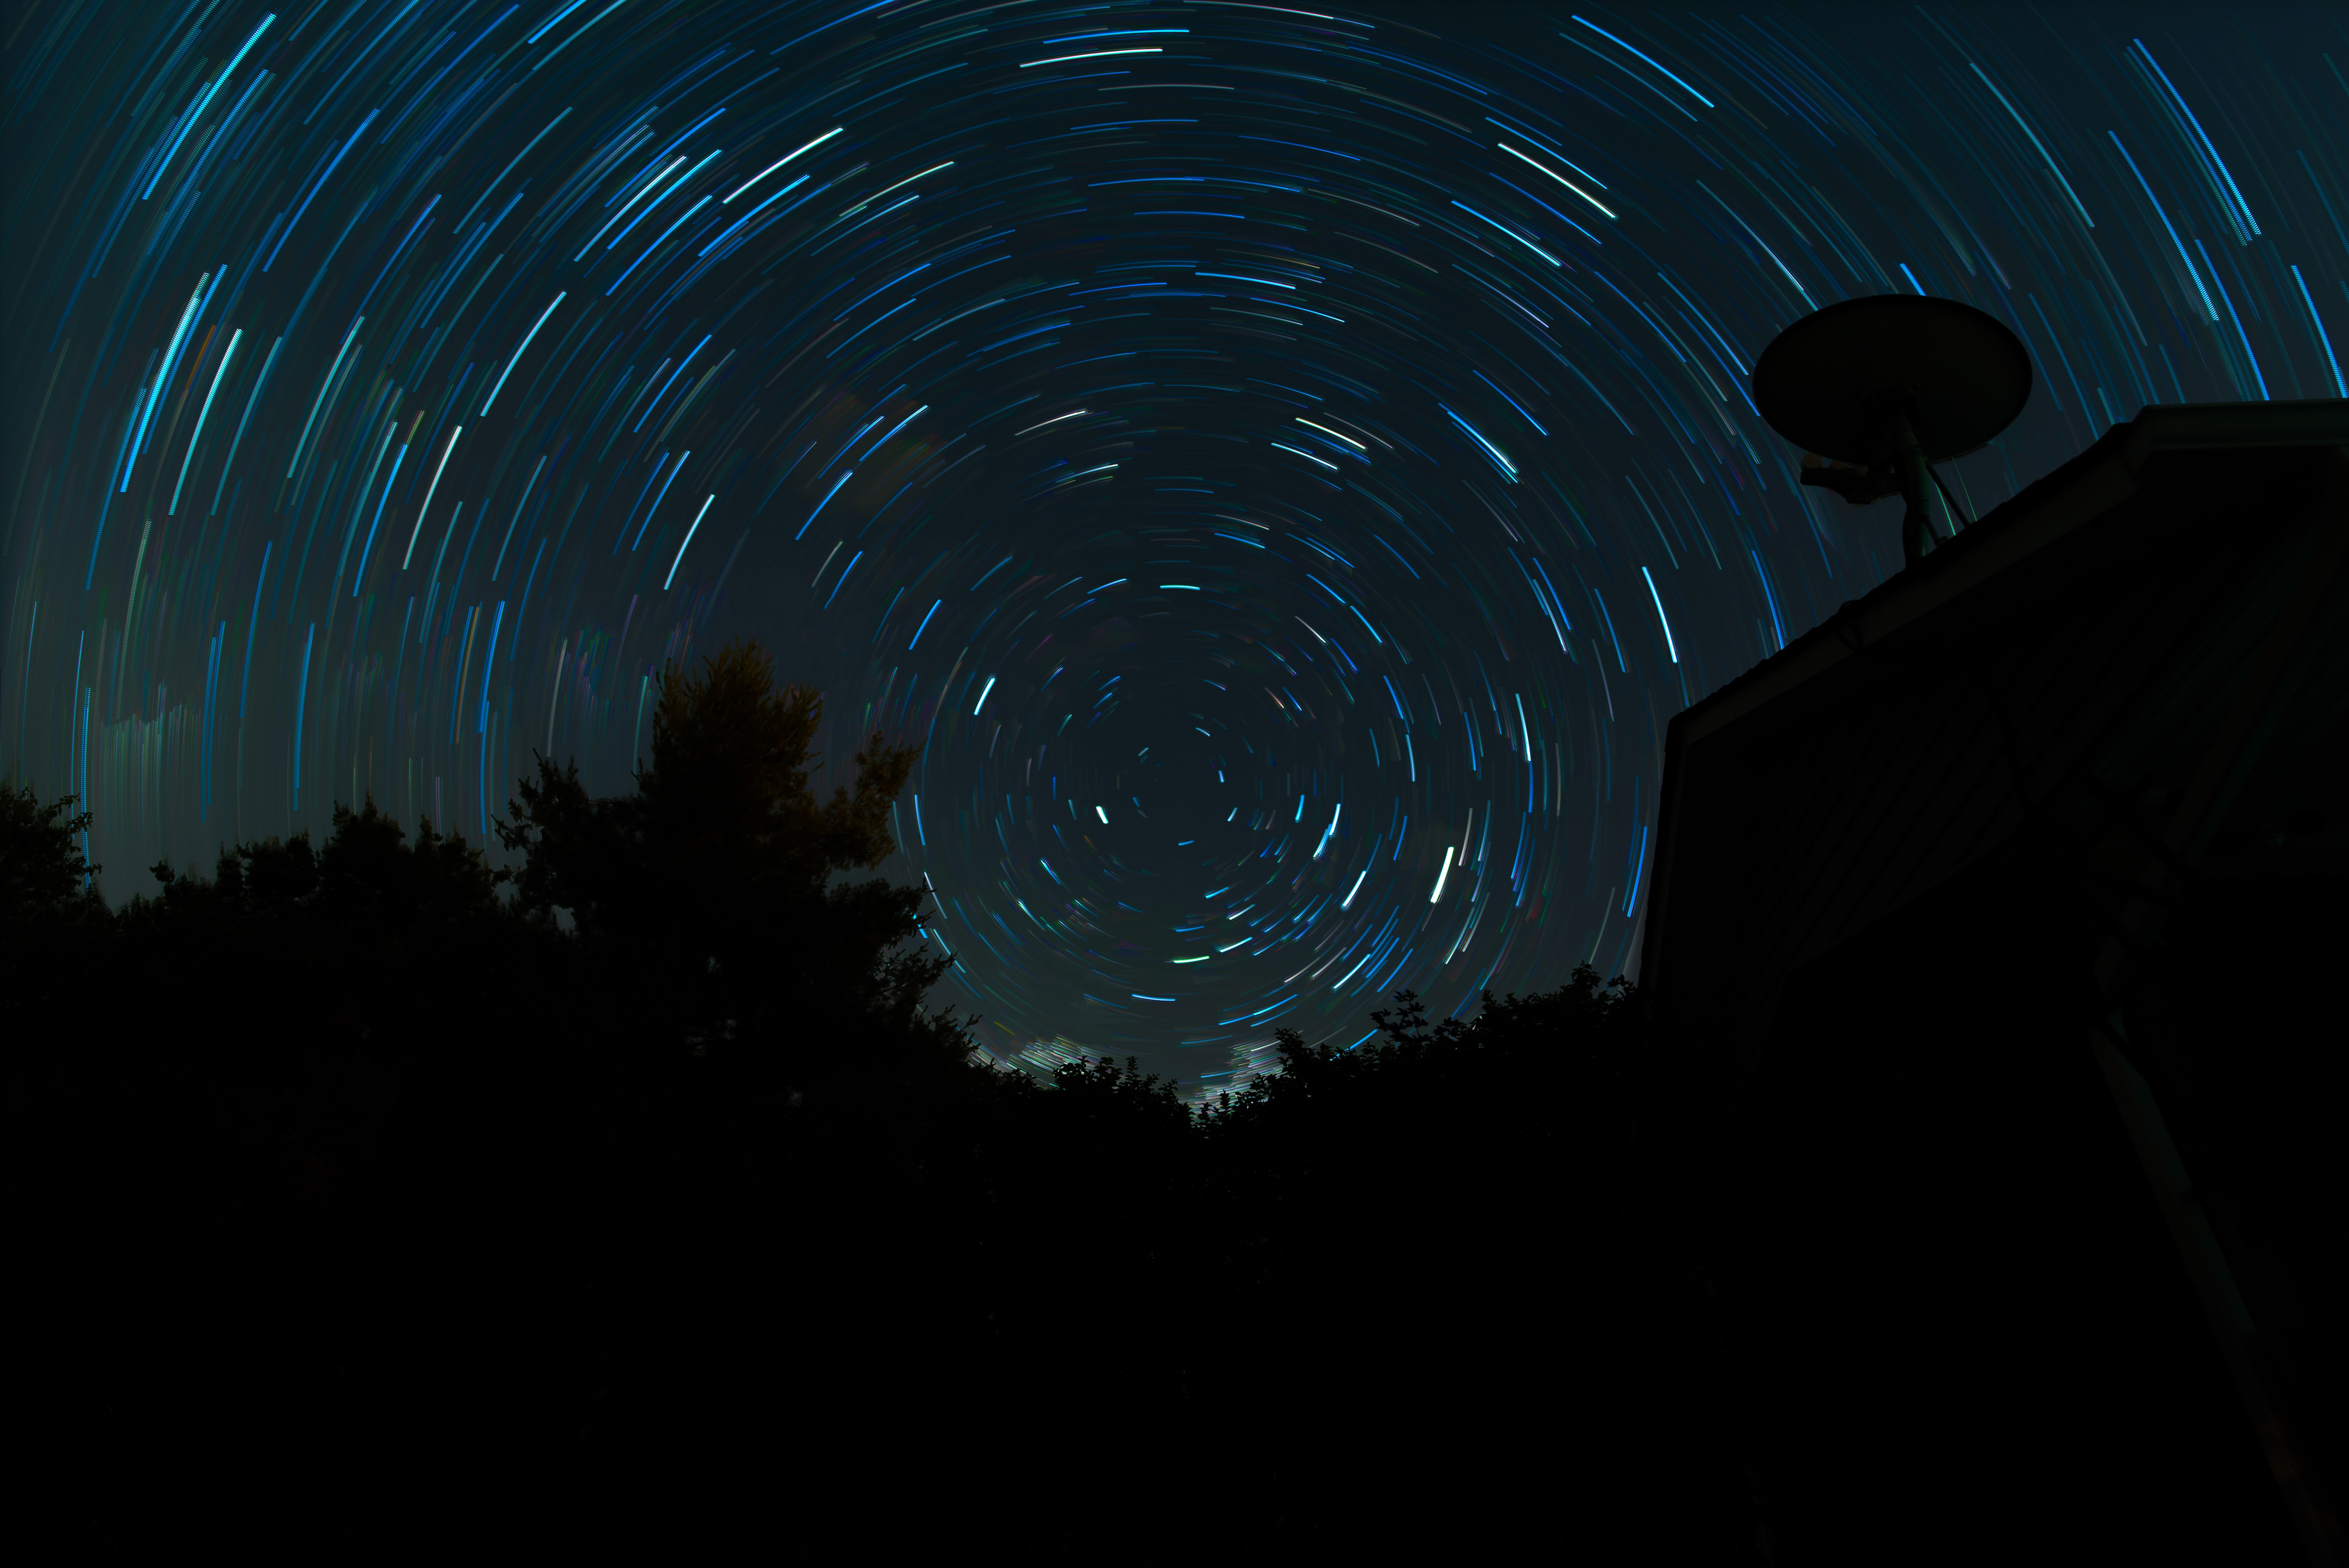 Star trail above the silhouette of trees and rooftop